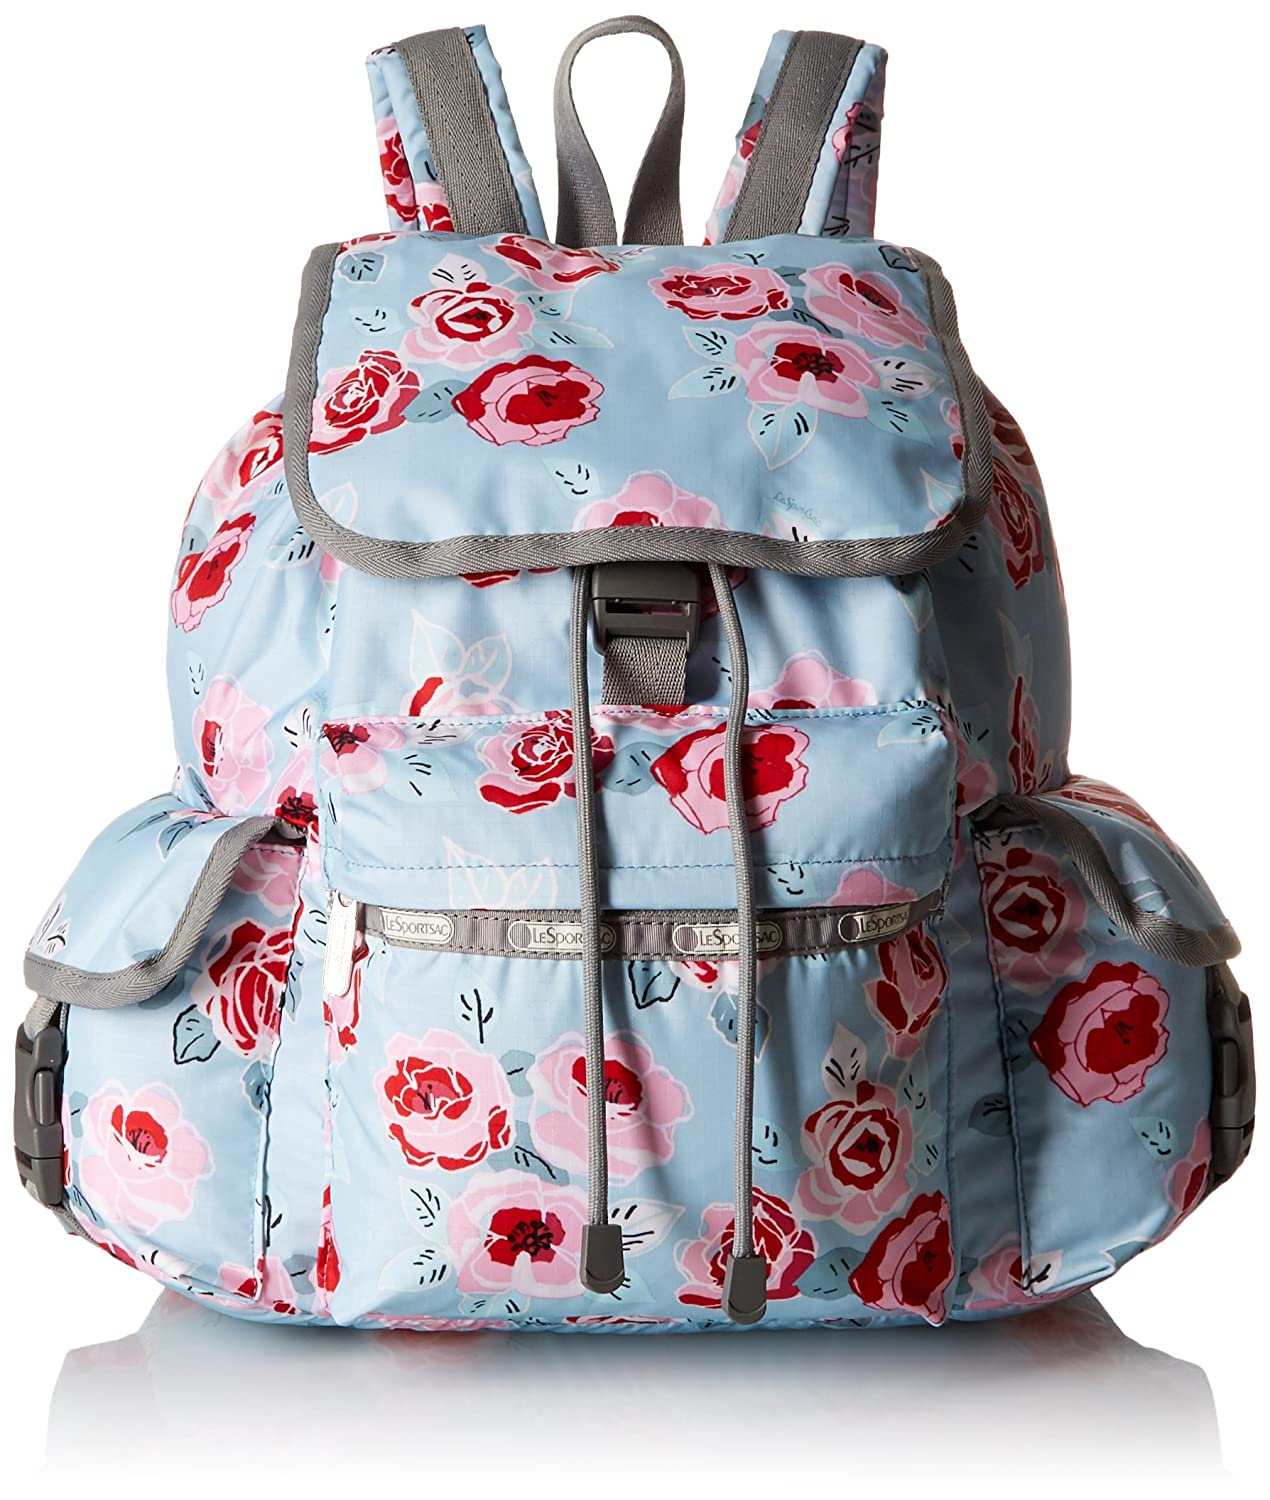 [レスポートサック] リュック(VOYAGER BACKPACK ) VOYAGER BACKPACK、軽量 7839 [並行輸入品] B016963WY4 Garden Sky Rose Garden Sky Rose